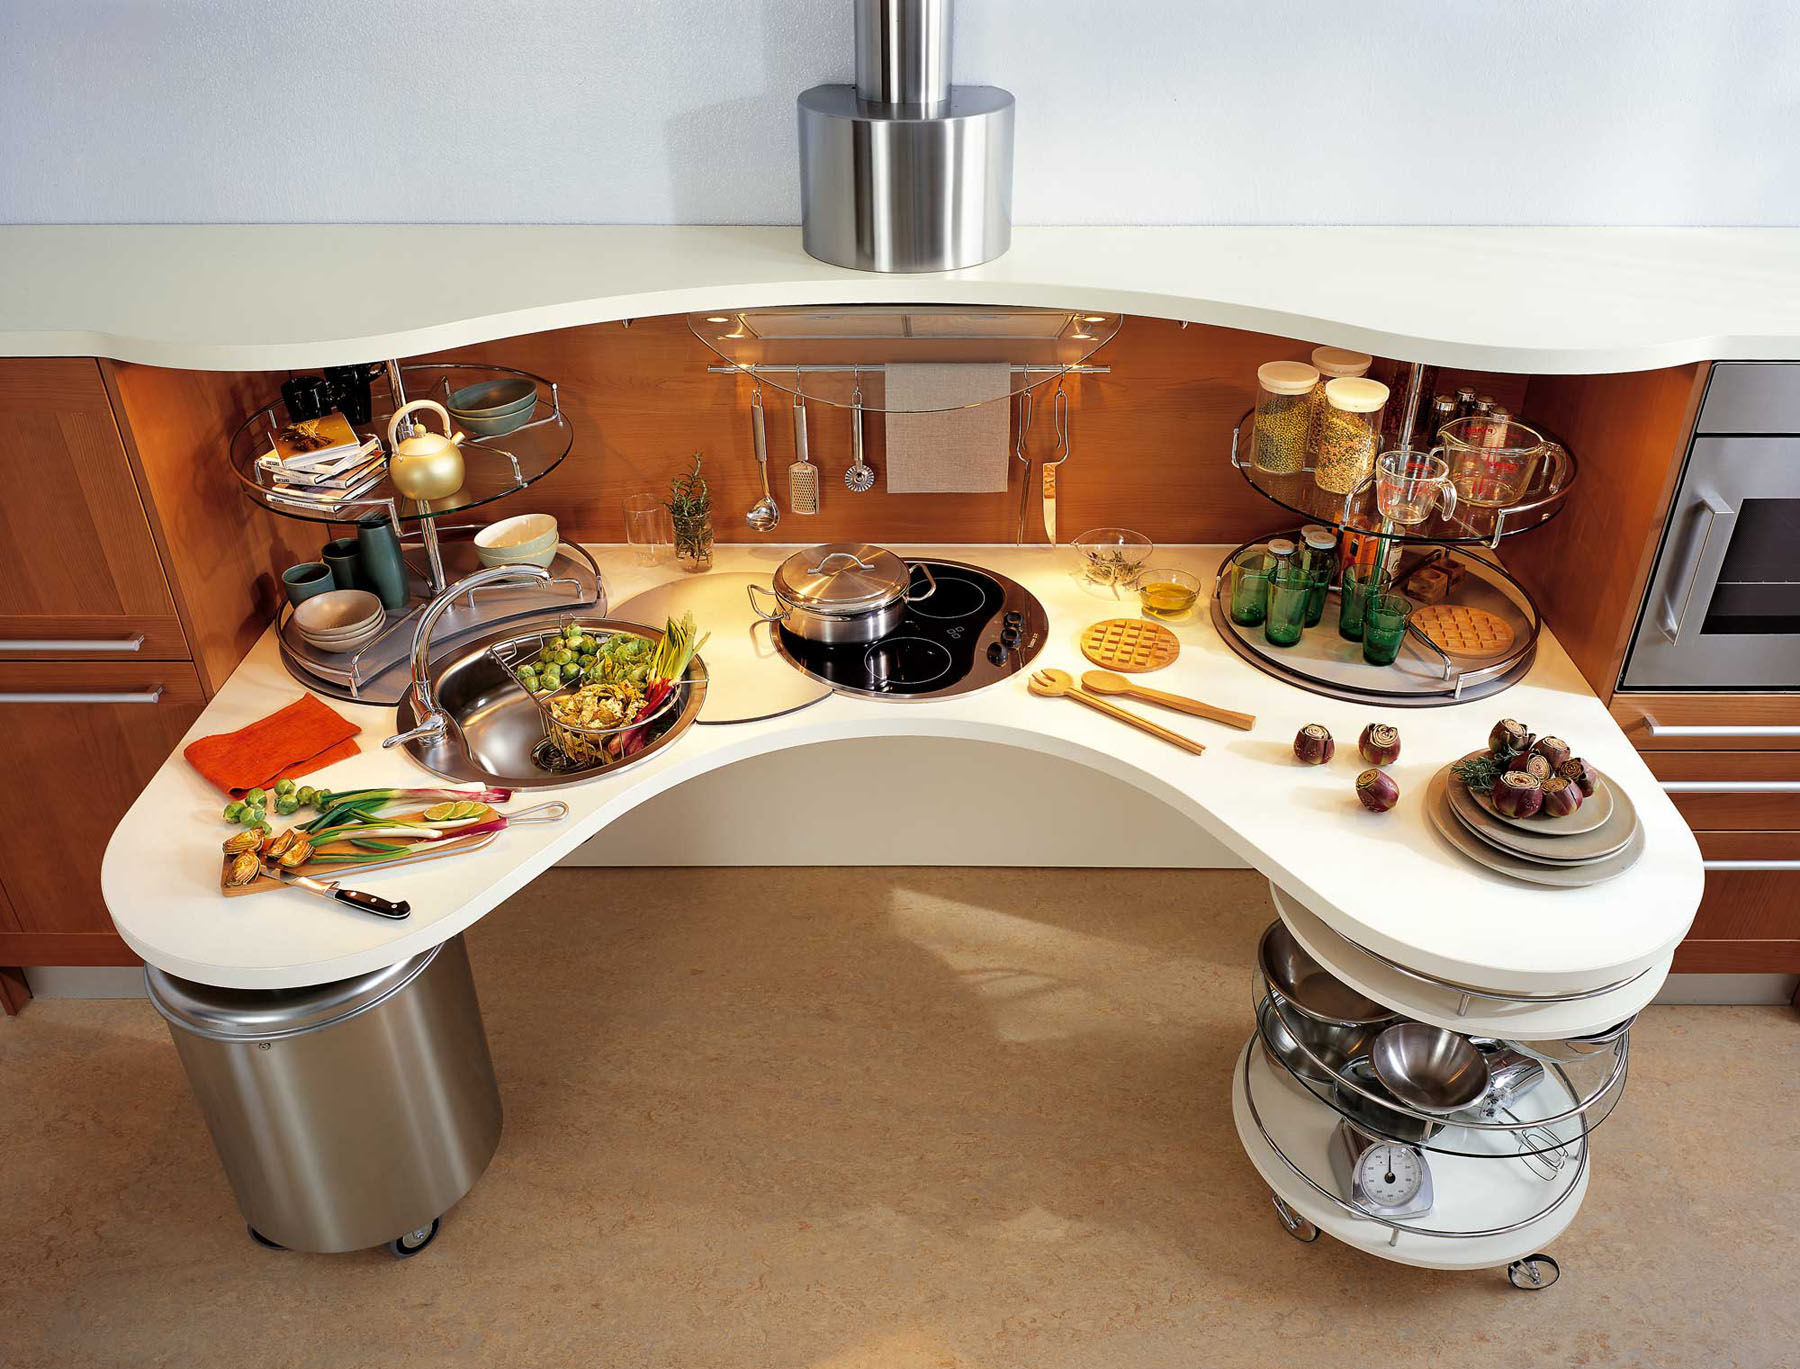 Ordinaire Ergonomic Italian Kitchen Design Suitable For Wheelchair Users